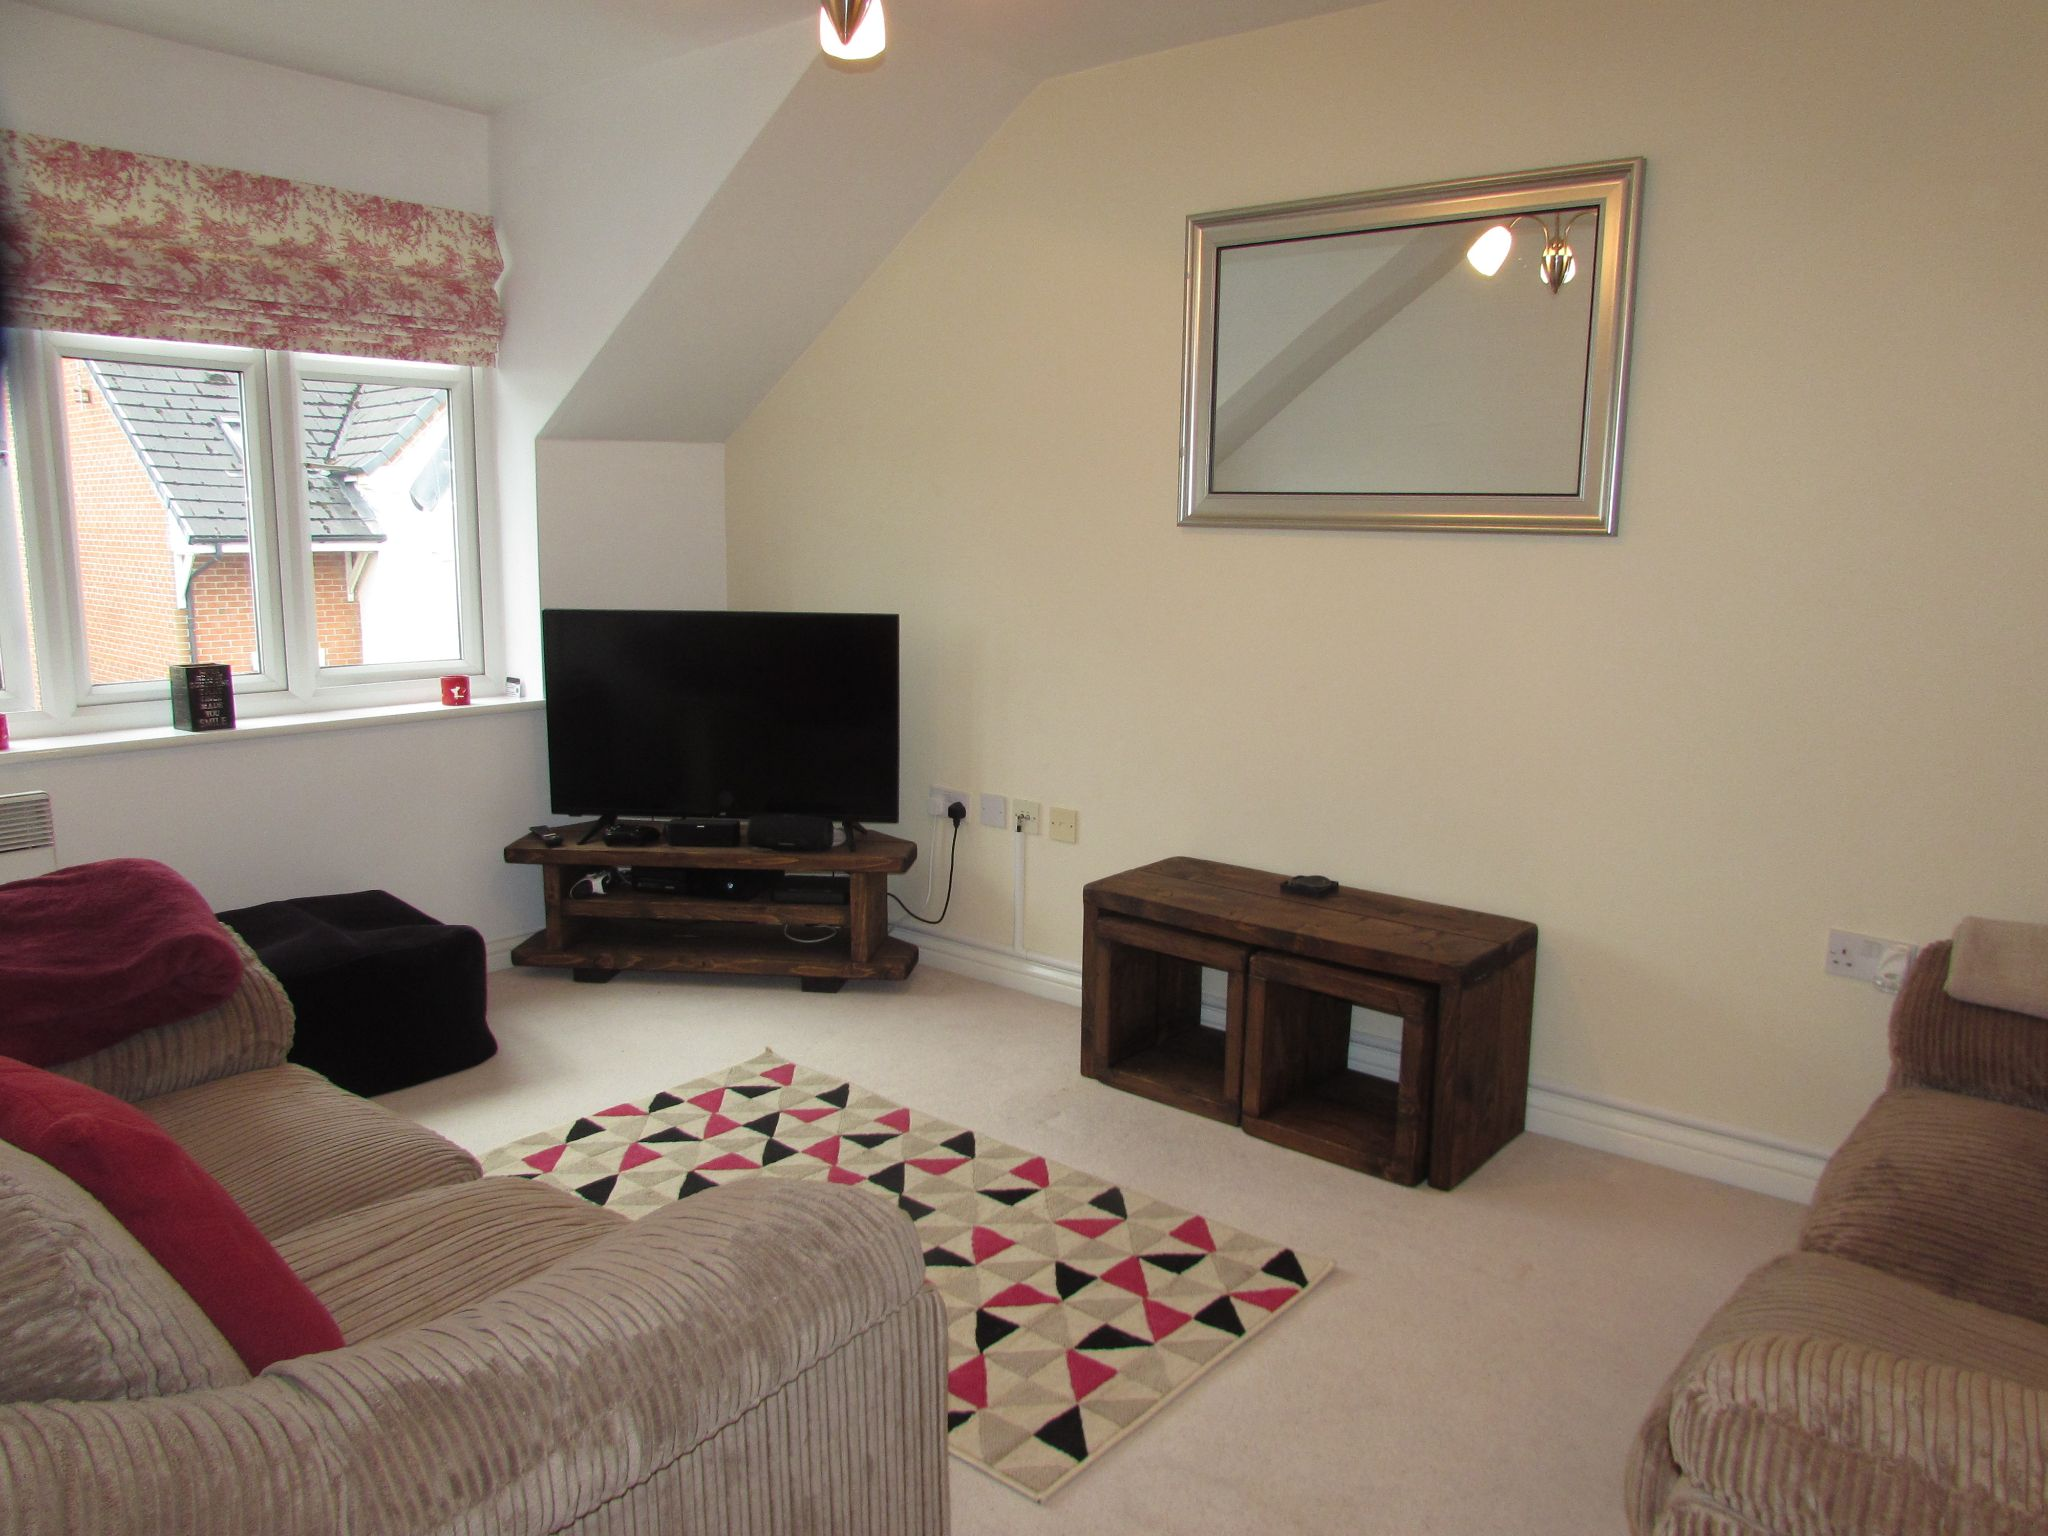 1 Bedroom Shared Flat/apartment To Rent - Photograph 2